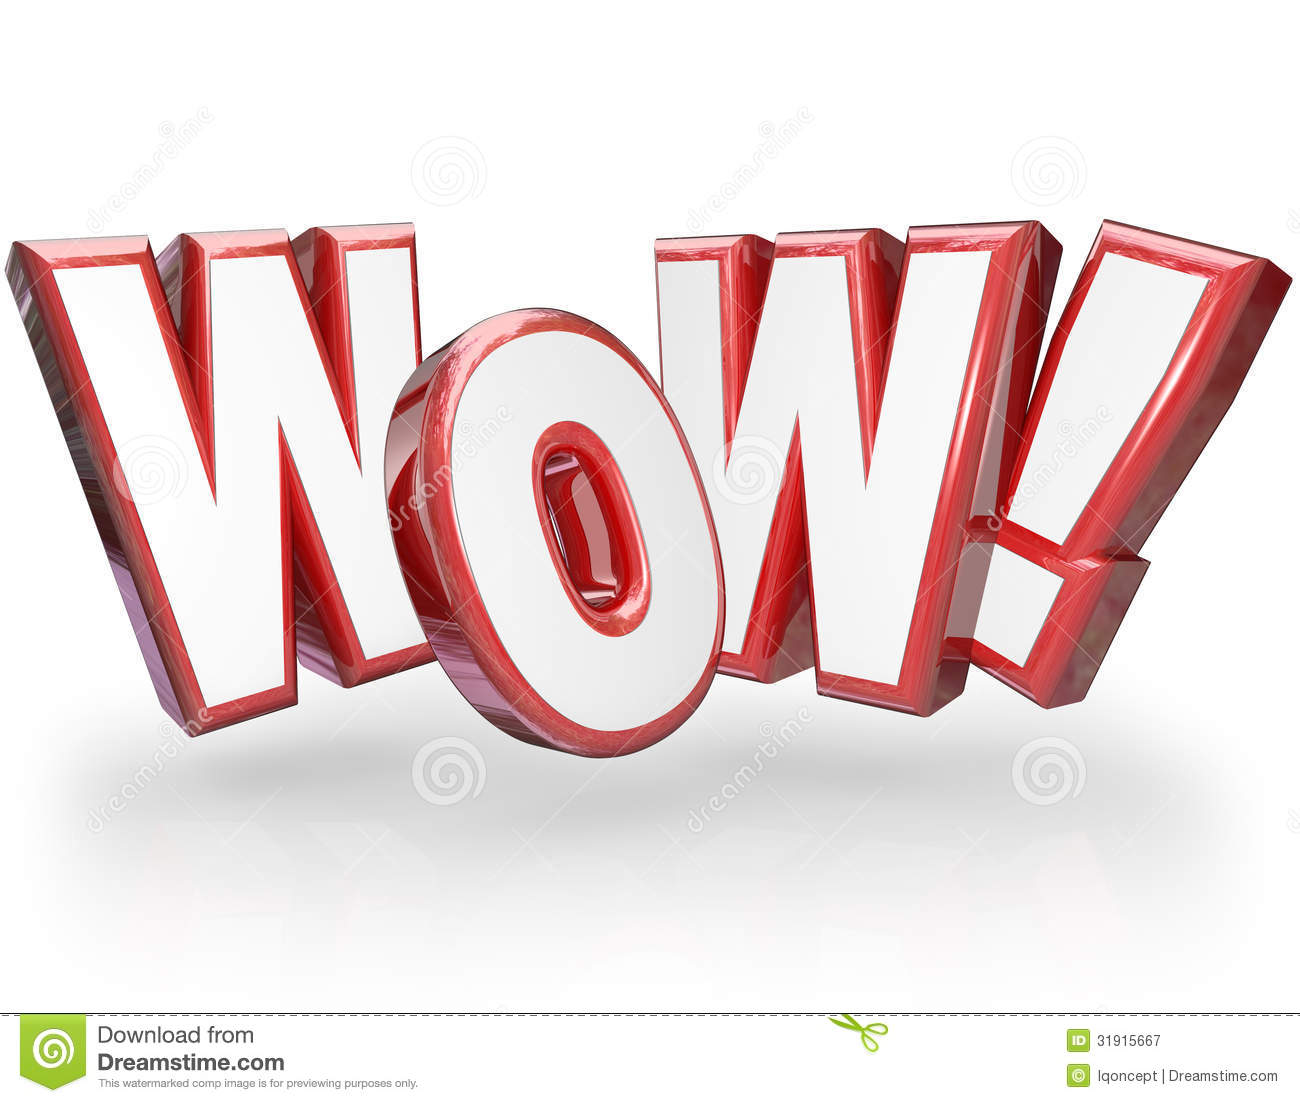 The Word Amazing: Wow Surprised Word Astonished Surprising Royalty Free